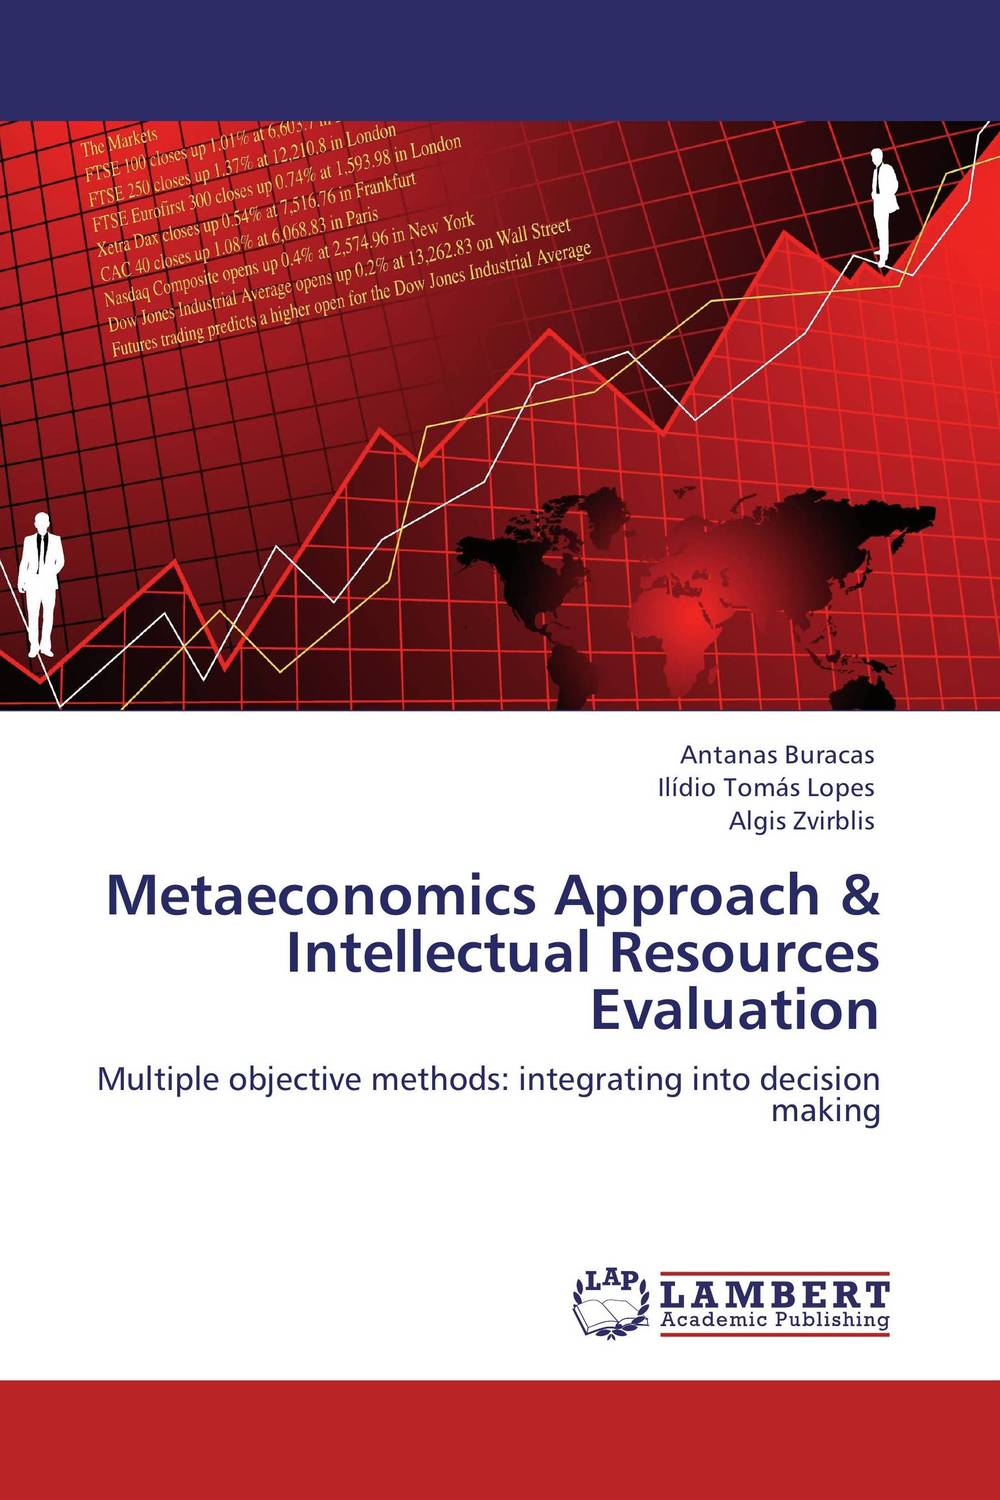 Metaeconomics Approach & Intellectual Resources Evaluation